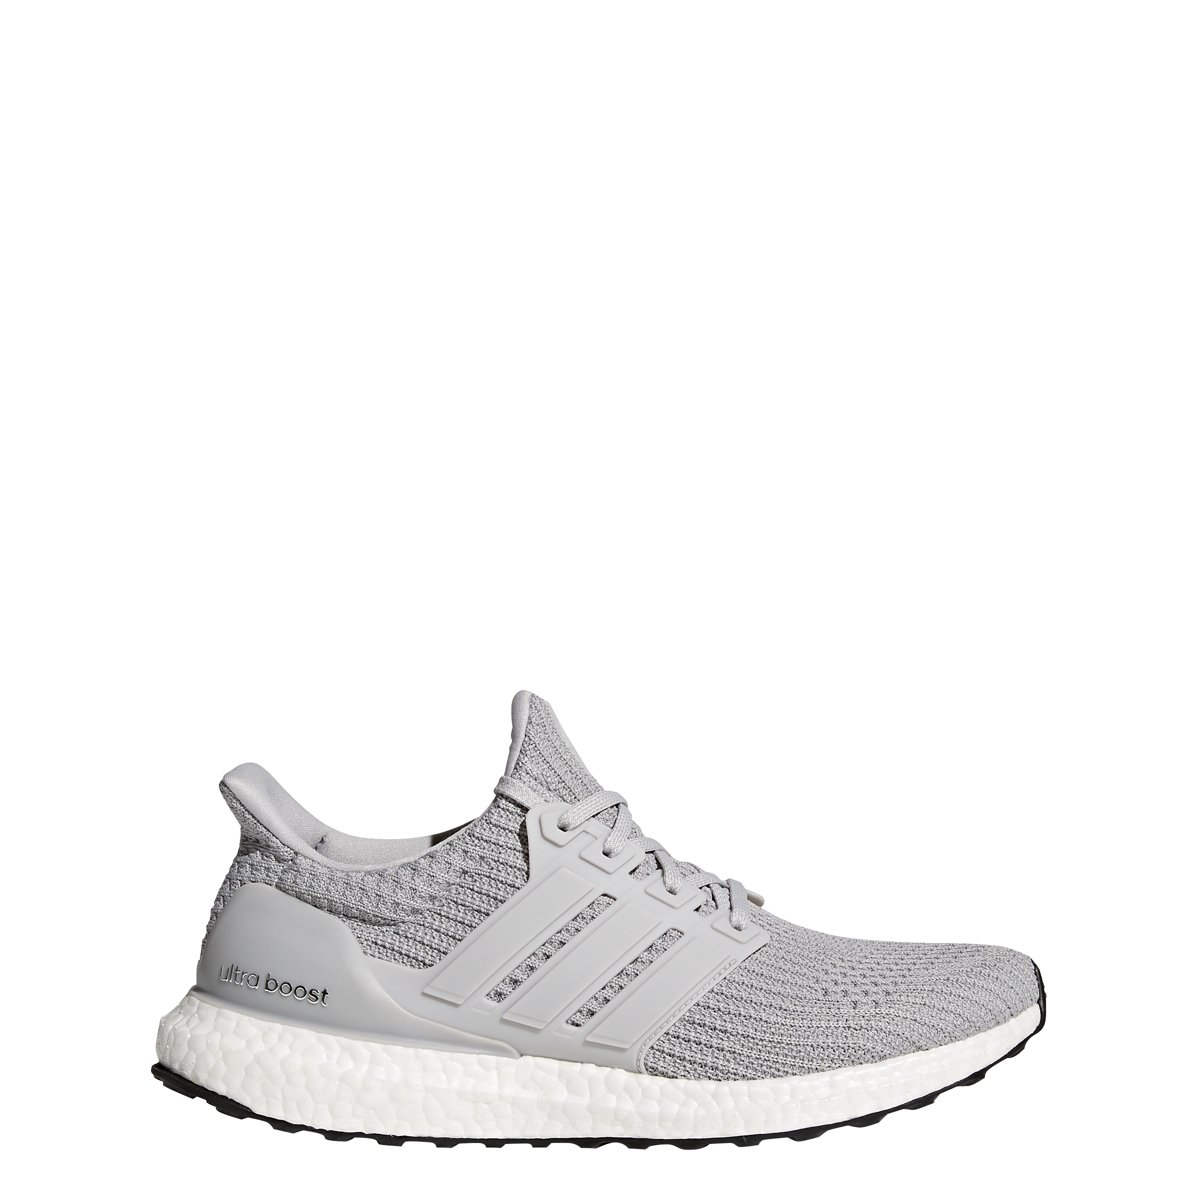 hot sale online 2a06d a865b adidas Ultraboost 4.0 Shoe Men's Running 5.5 Grey-Black